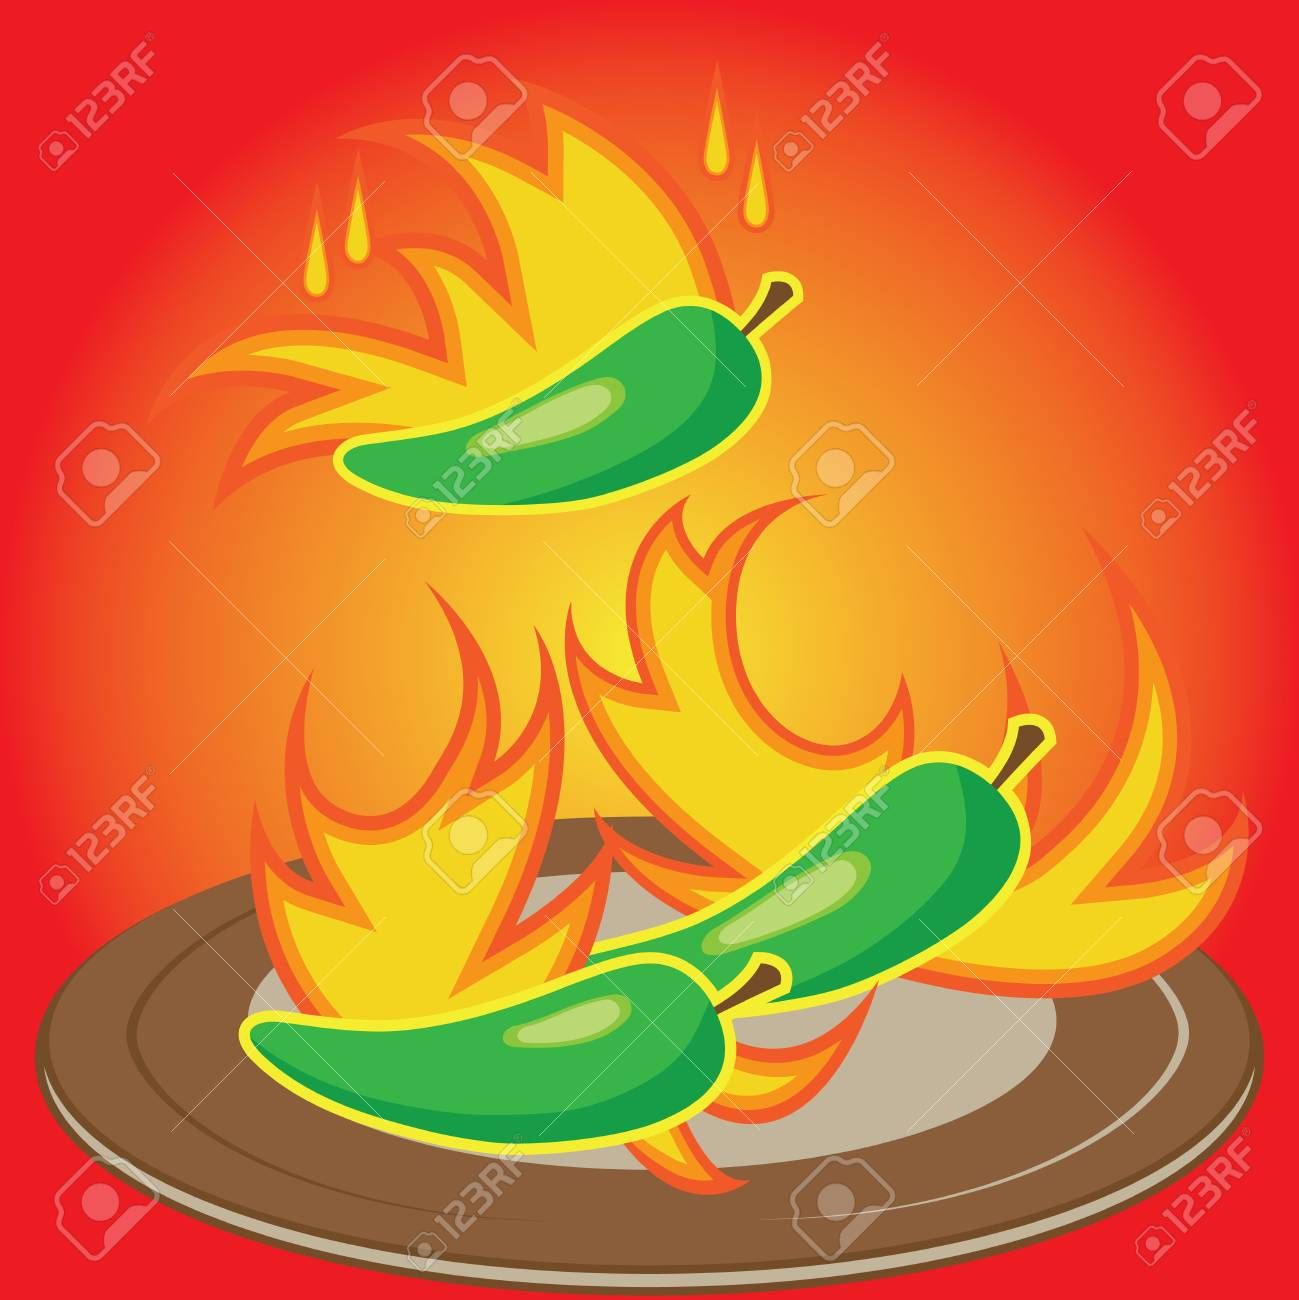 Hot chili pepper burning in fire - a concept of spicyness of chili Stock Photo - 11508861